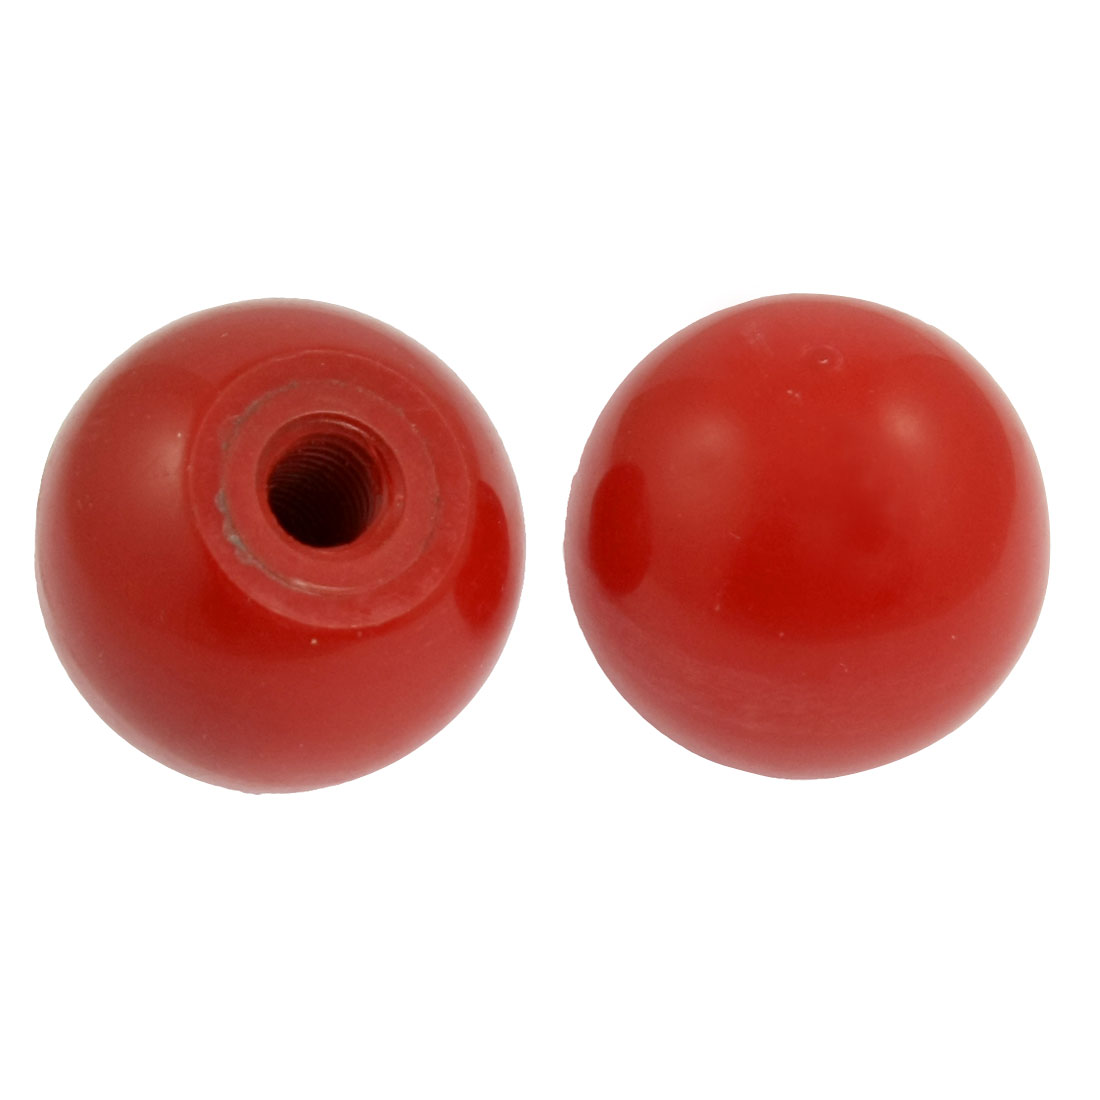 "11/32"" Thread Hole 1 17/32"" Diameter Red Hard Plastic Ball Knob 2 Pcs"